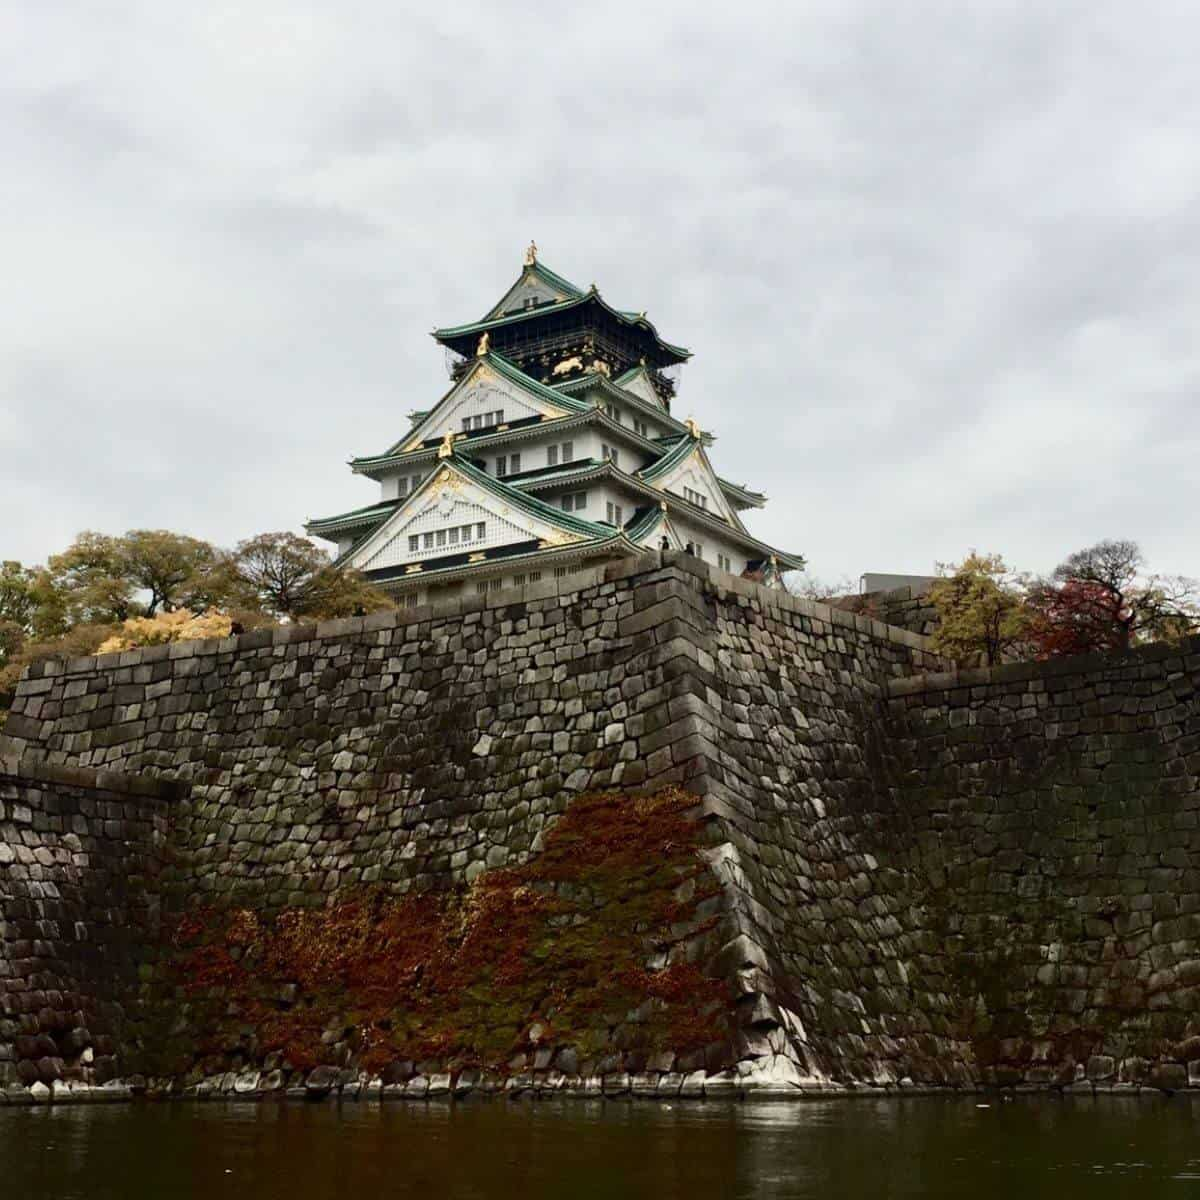 Osaka Castle above a body of water.